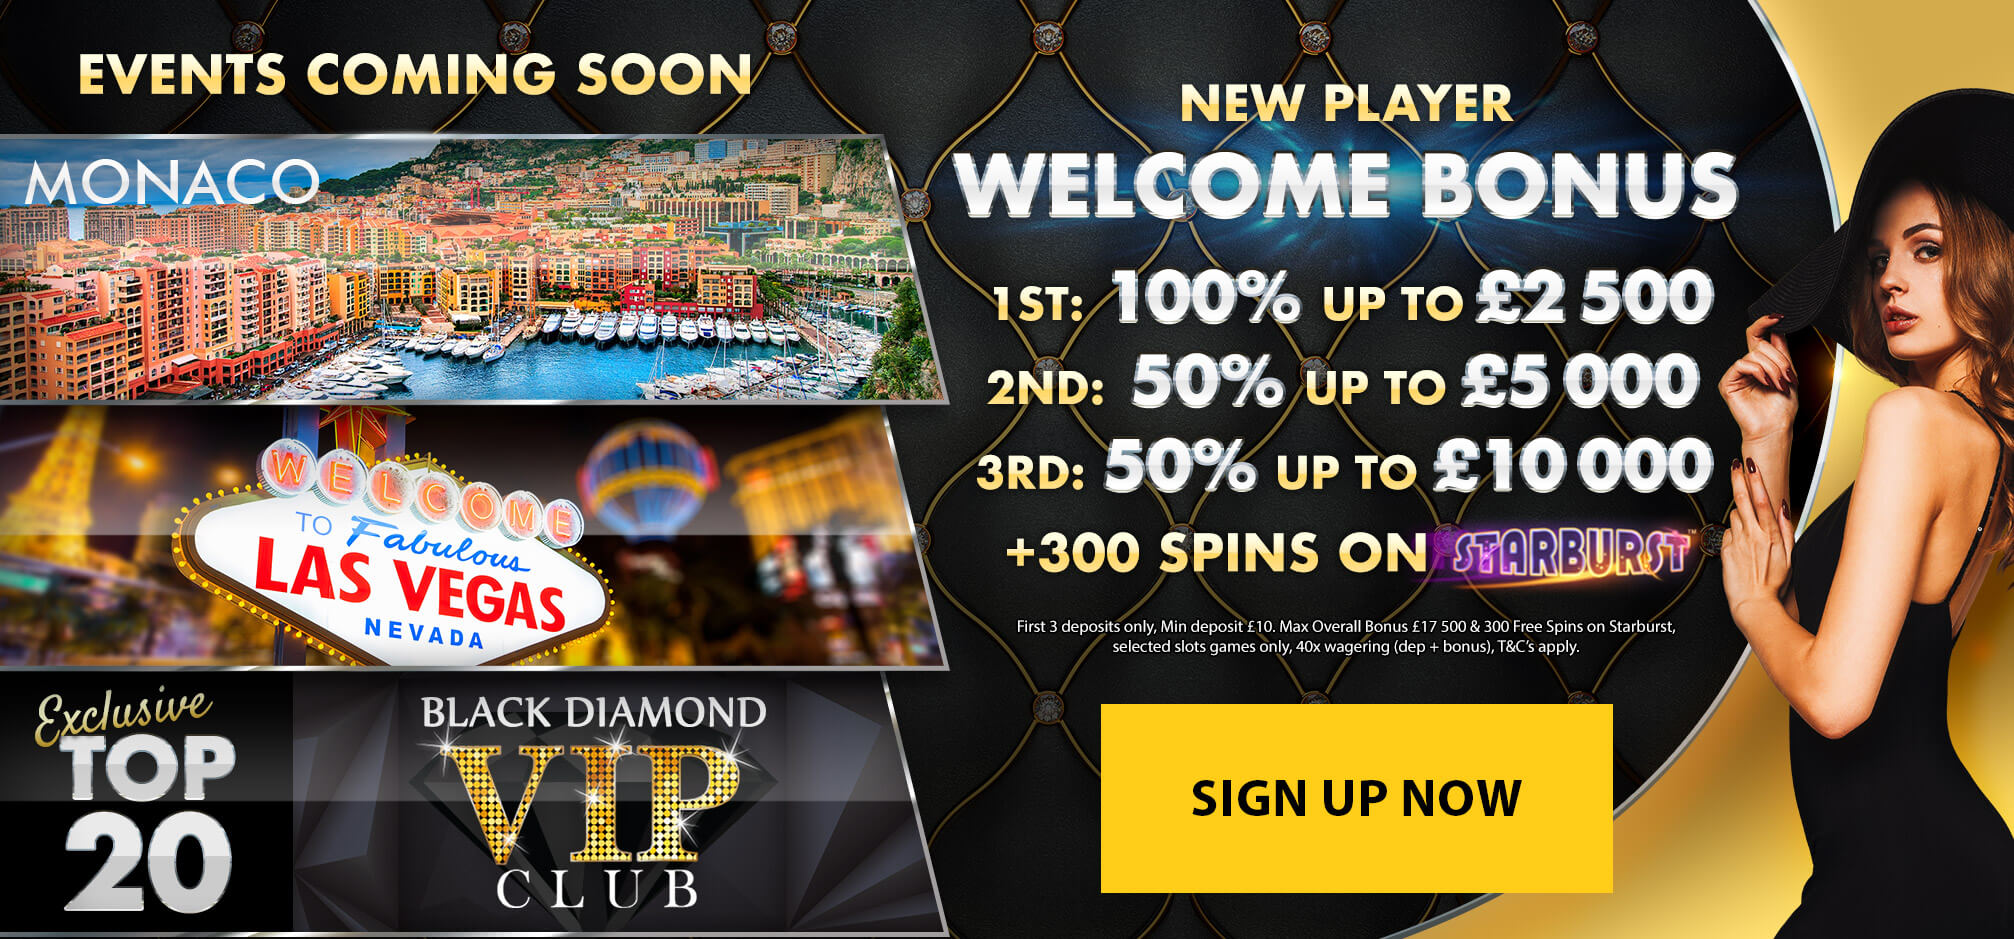 Royal Savoy Casino - £/€17,500 in New Player Bonuses